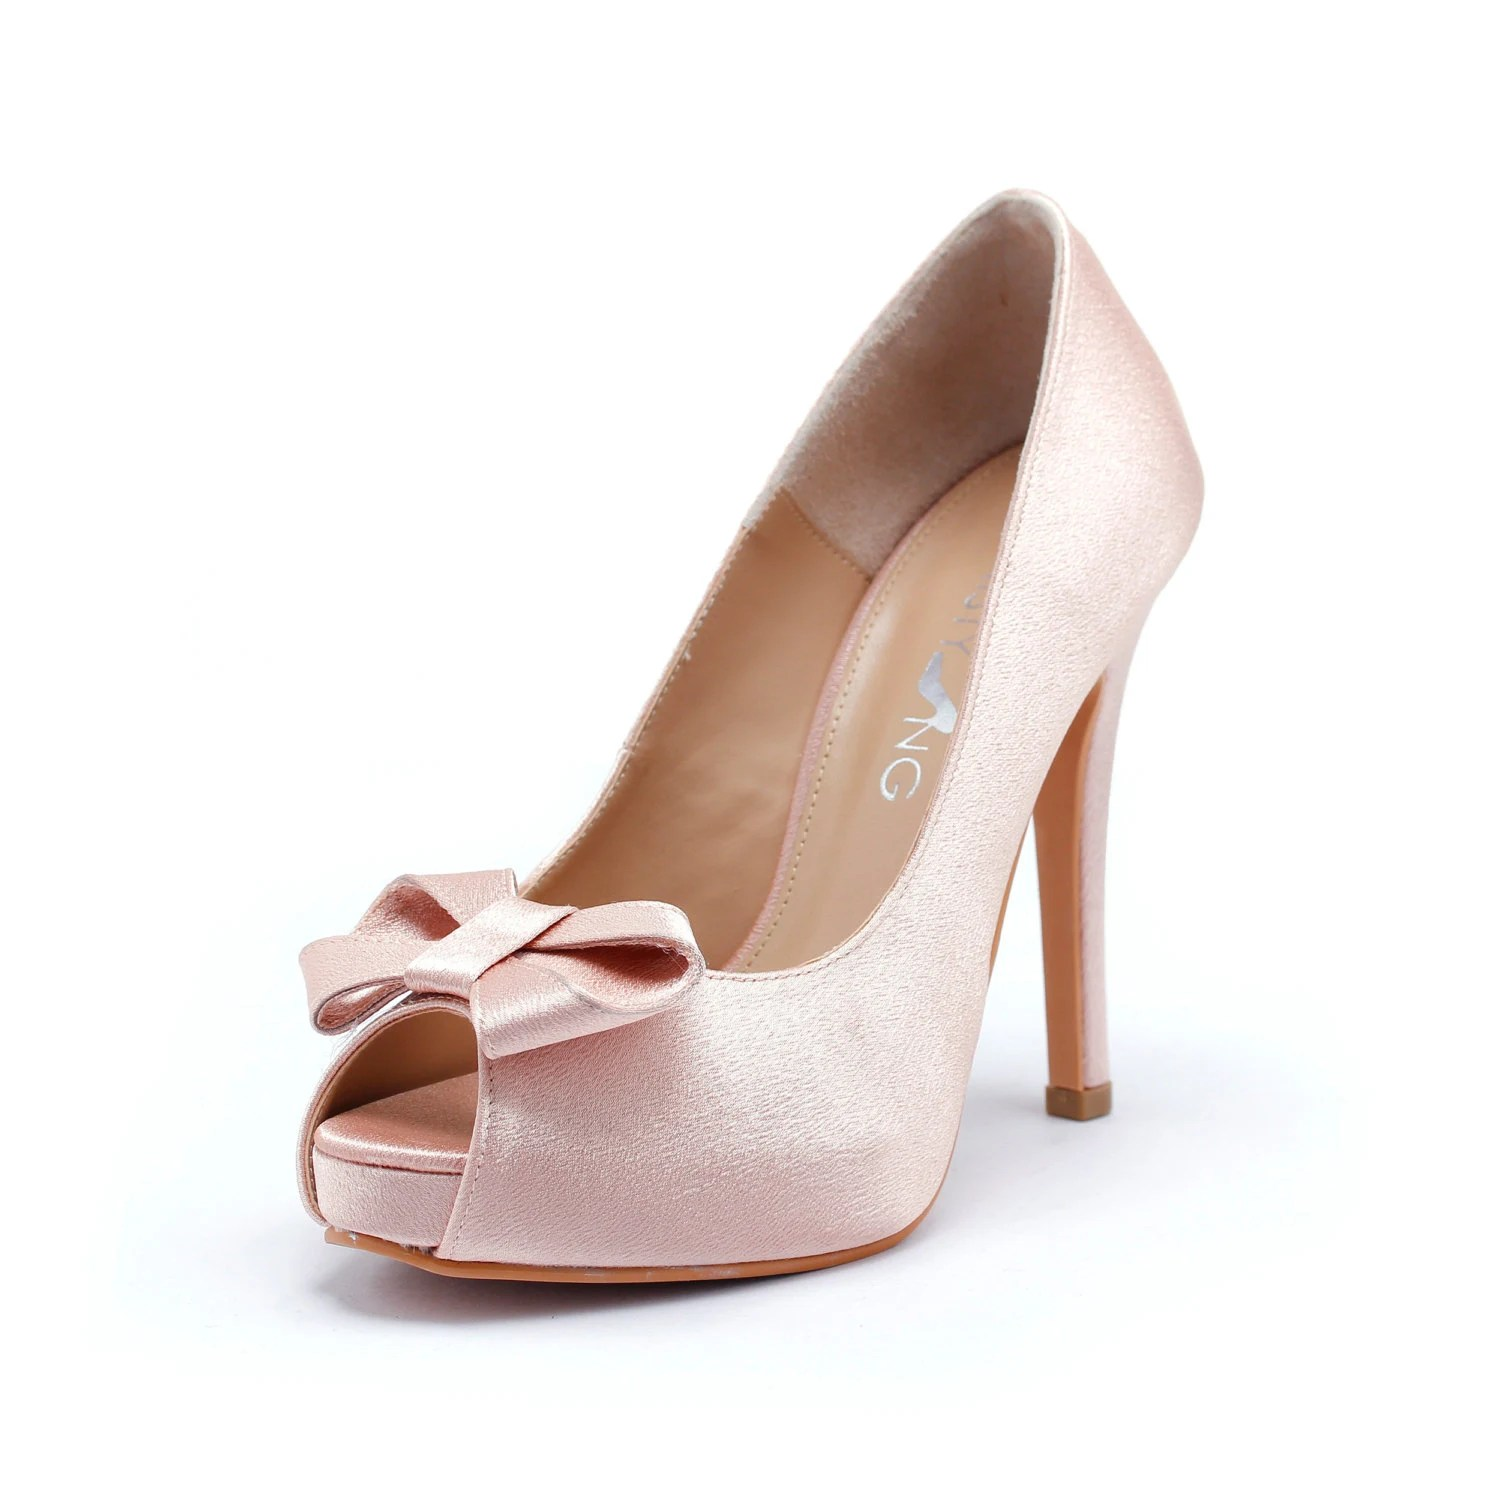 Sweetheart Wedding Shoes in Blush Silk Satin, Valentine Day's Shoes, Nude Blush Bridal Shoes, Light Pink Wedding Heels - ChristyNgShoes